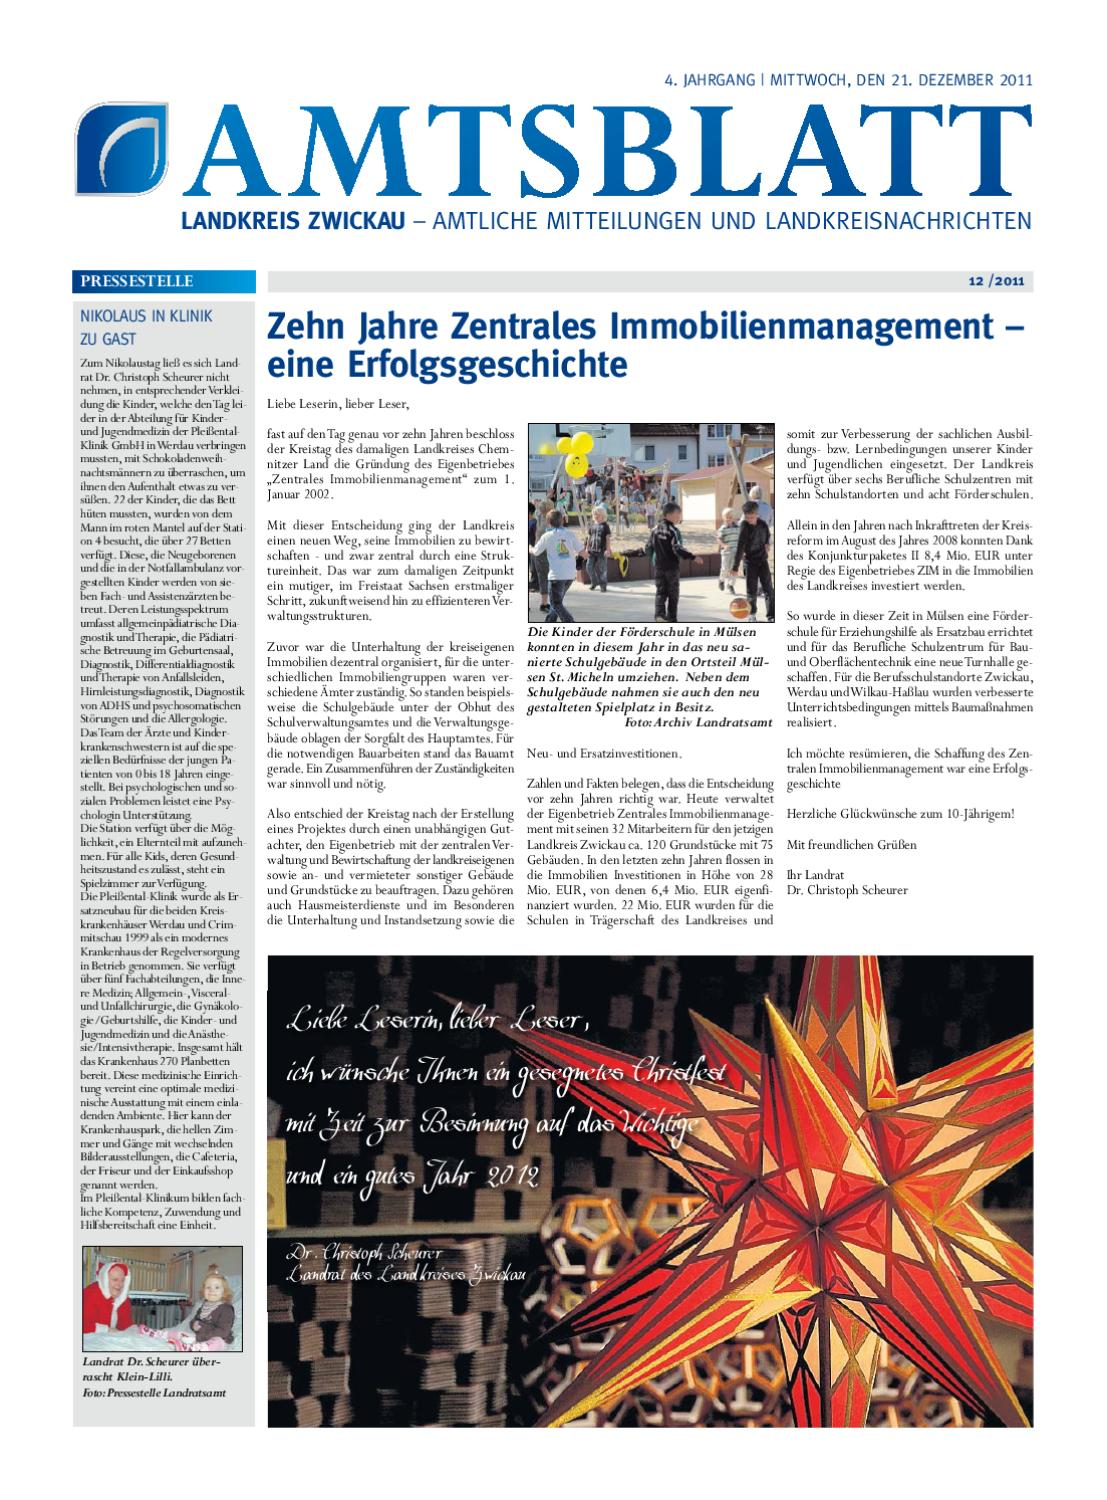 20111221_Amtsblatt_LKZ_H by Page Pro Media GmbH - issuu